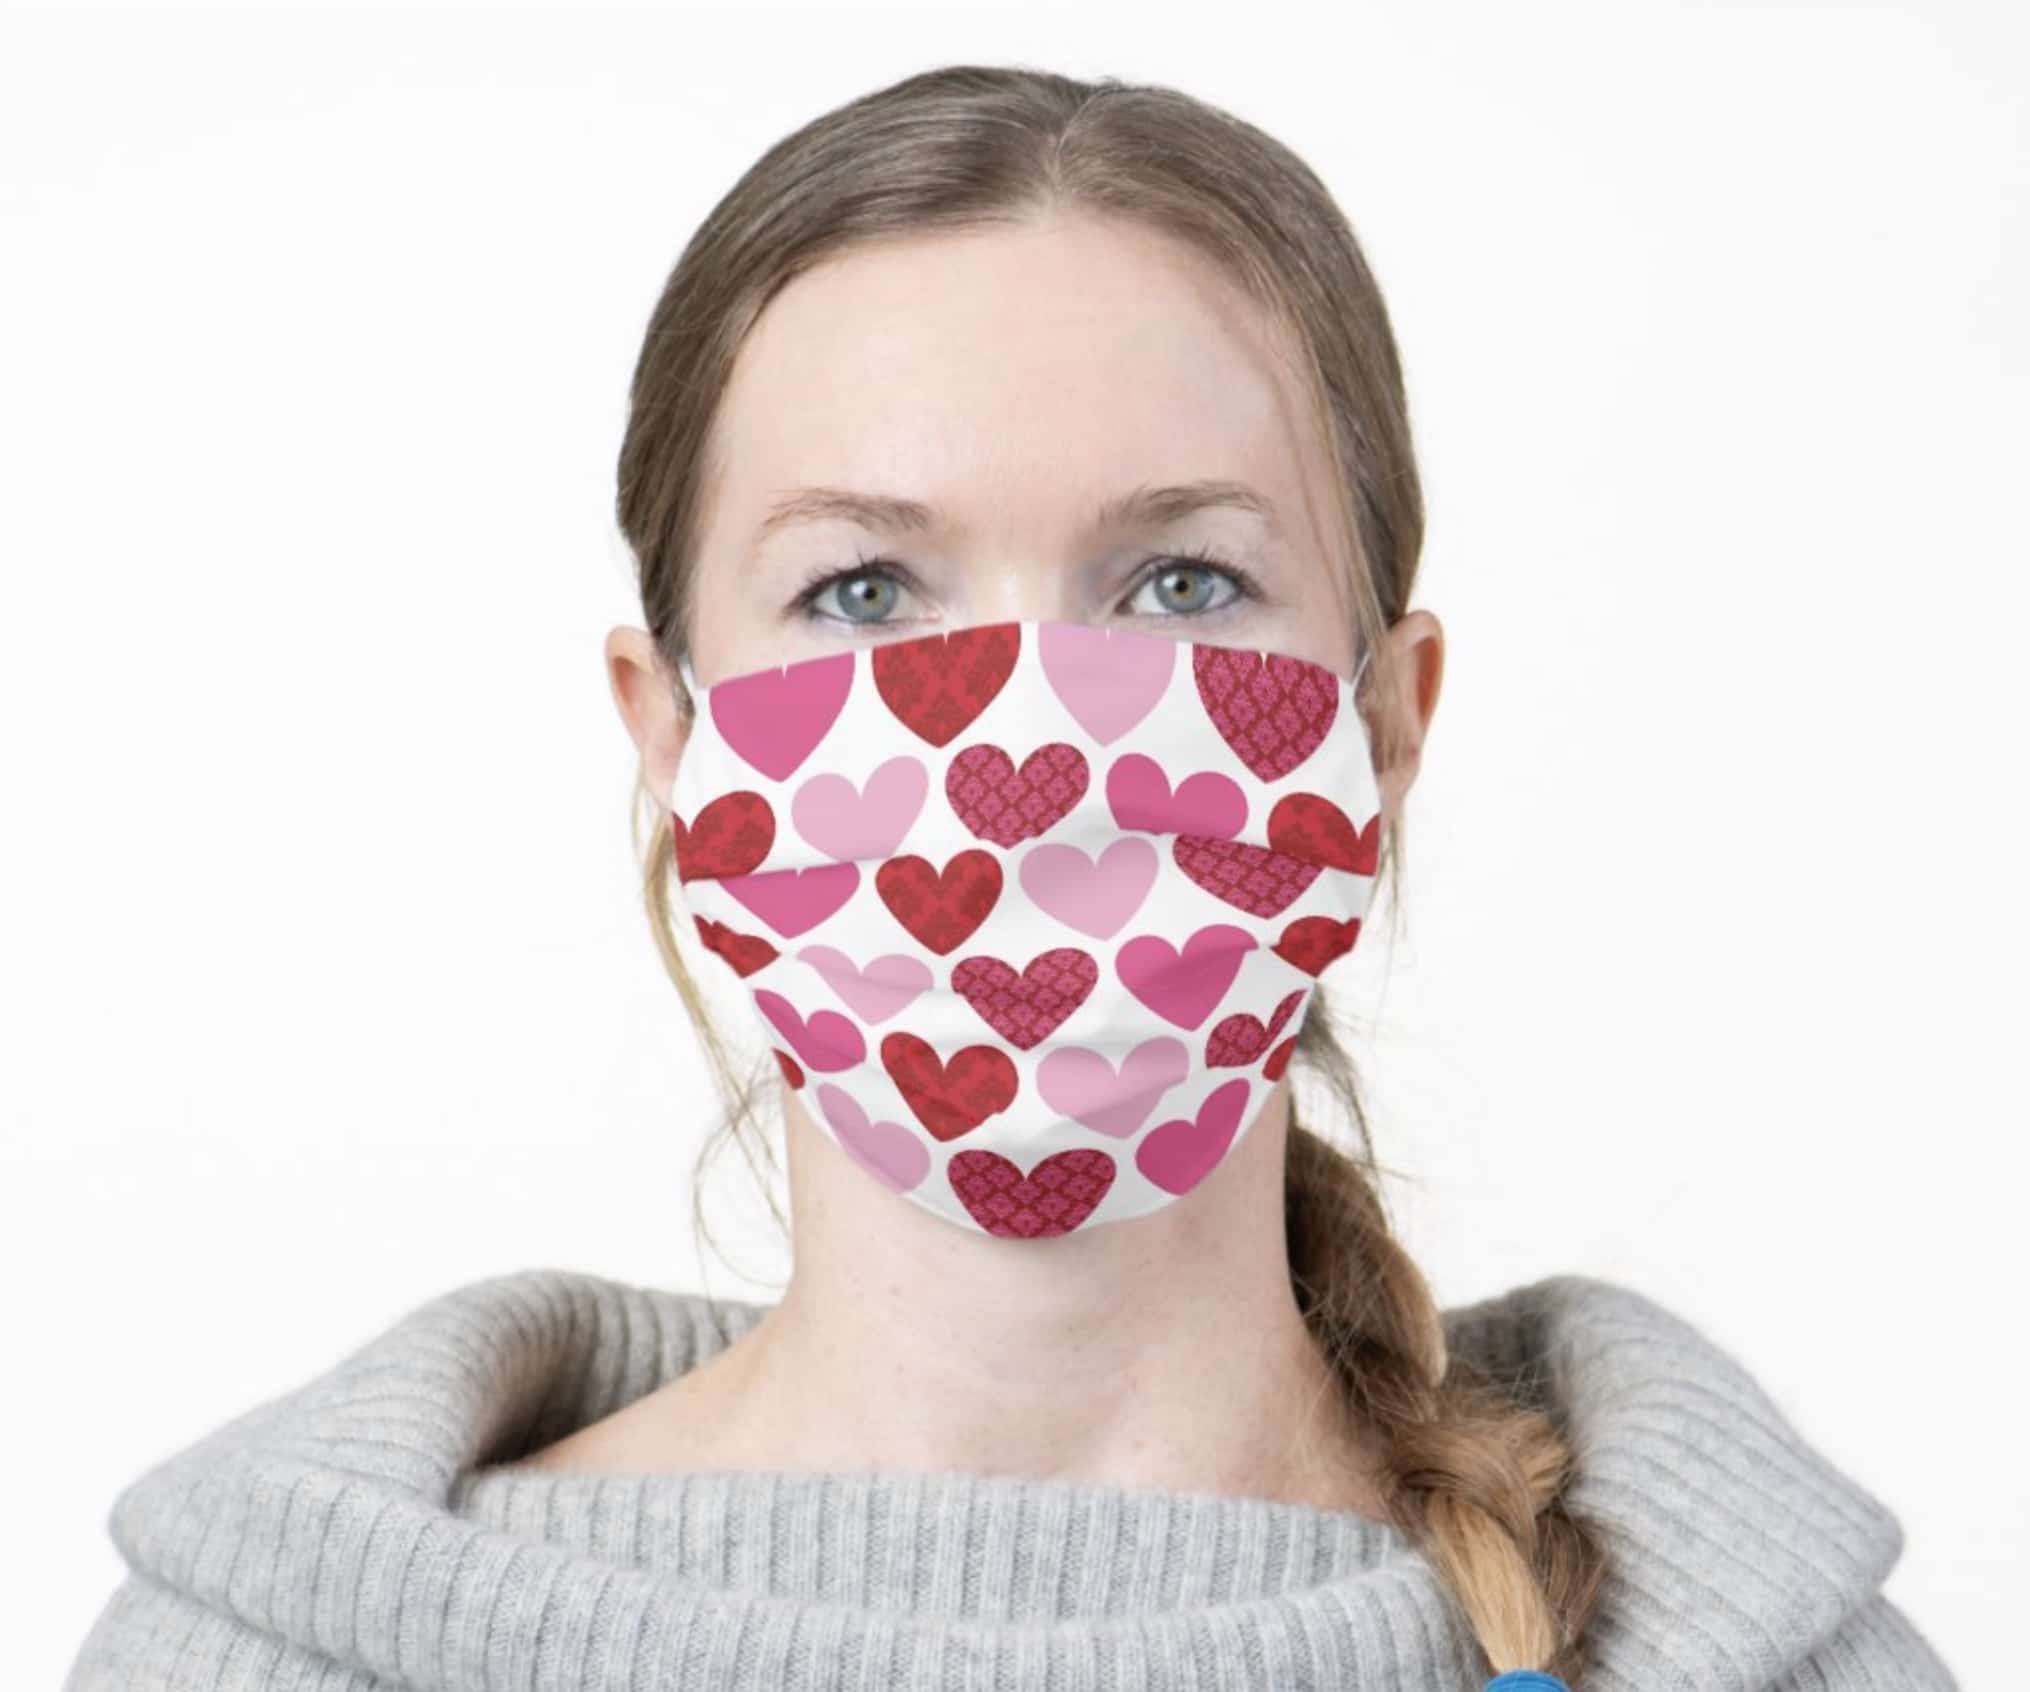 A woman wearing a Zazzle face mask